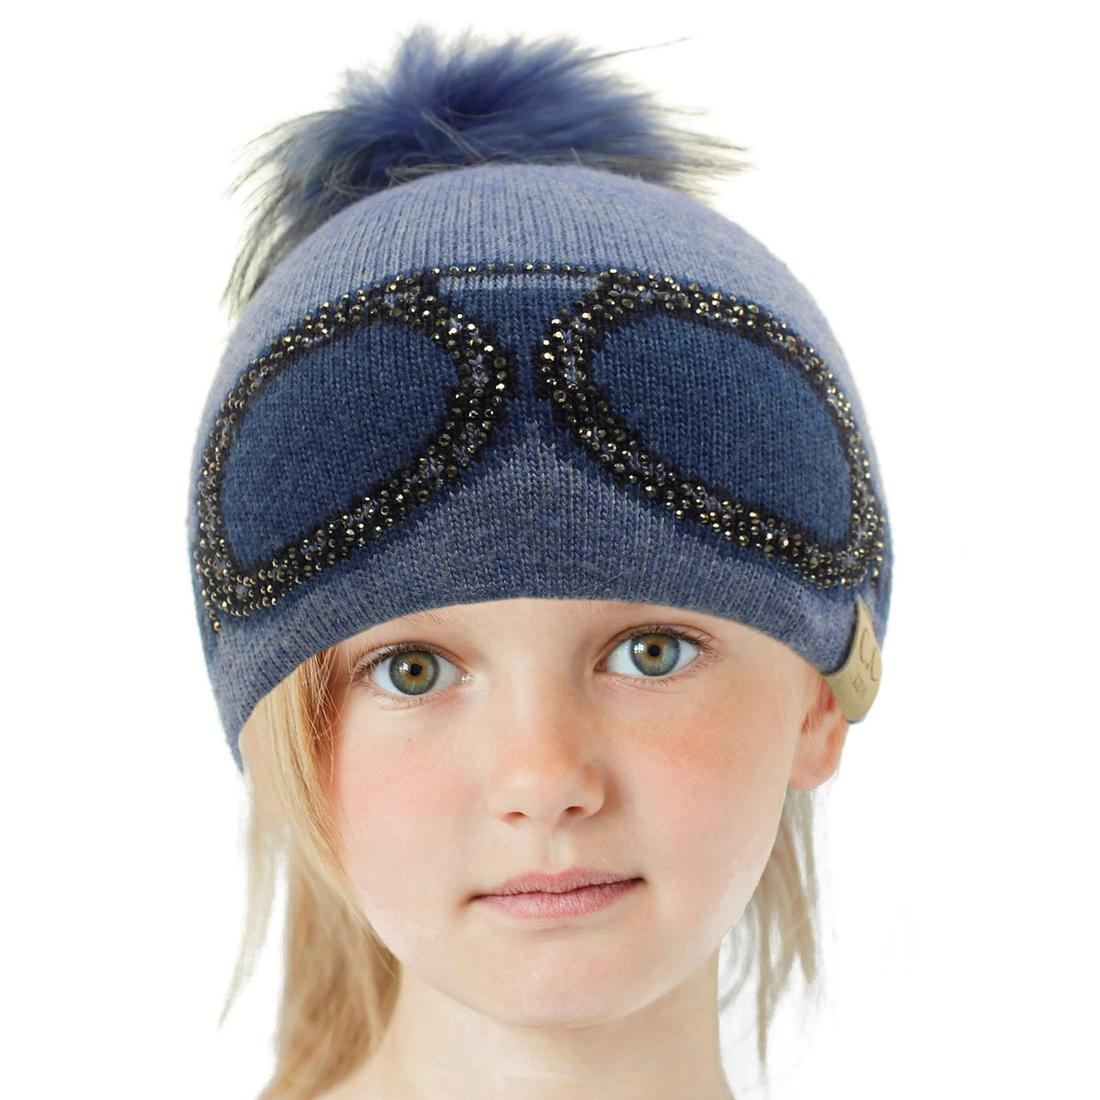 Kids CC Black Label Ages 2-7 Real Fur PomPom Stretchy Knit Beanie Cap Hat